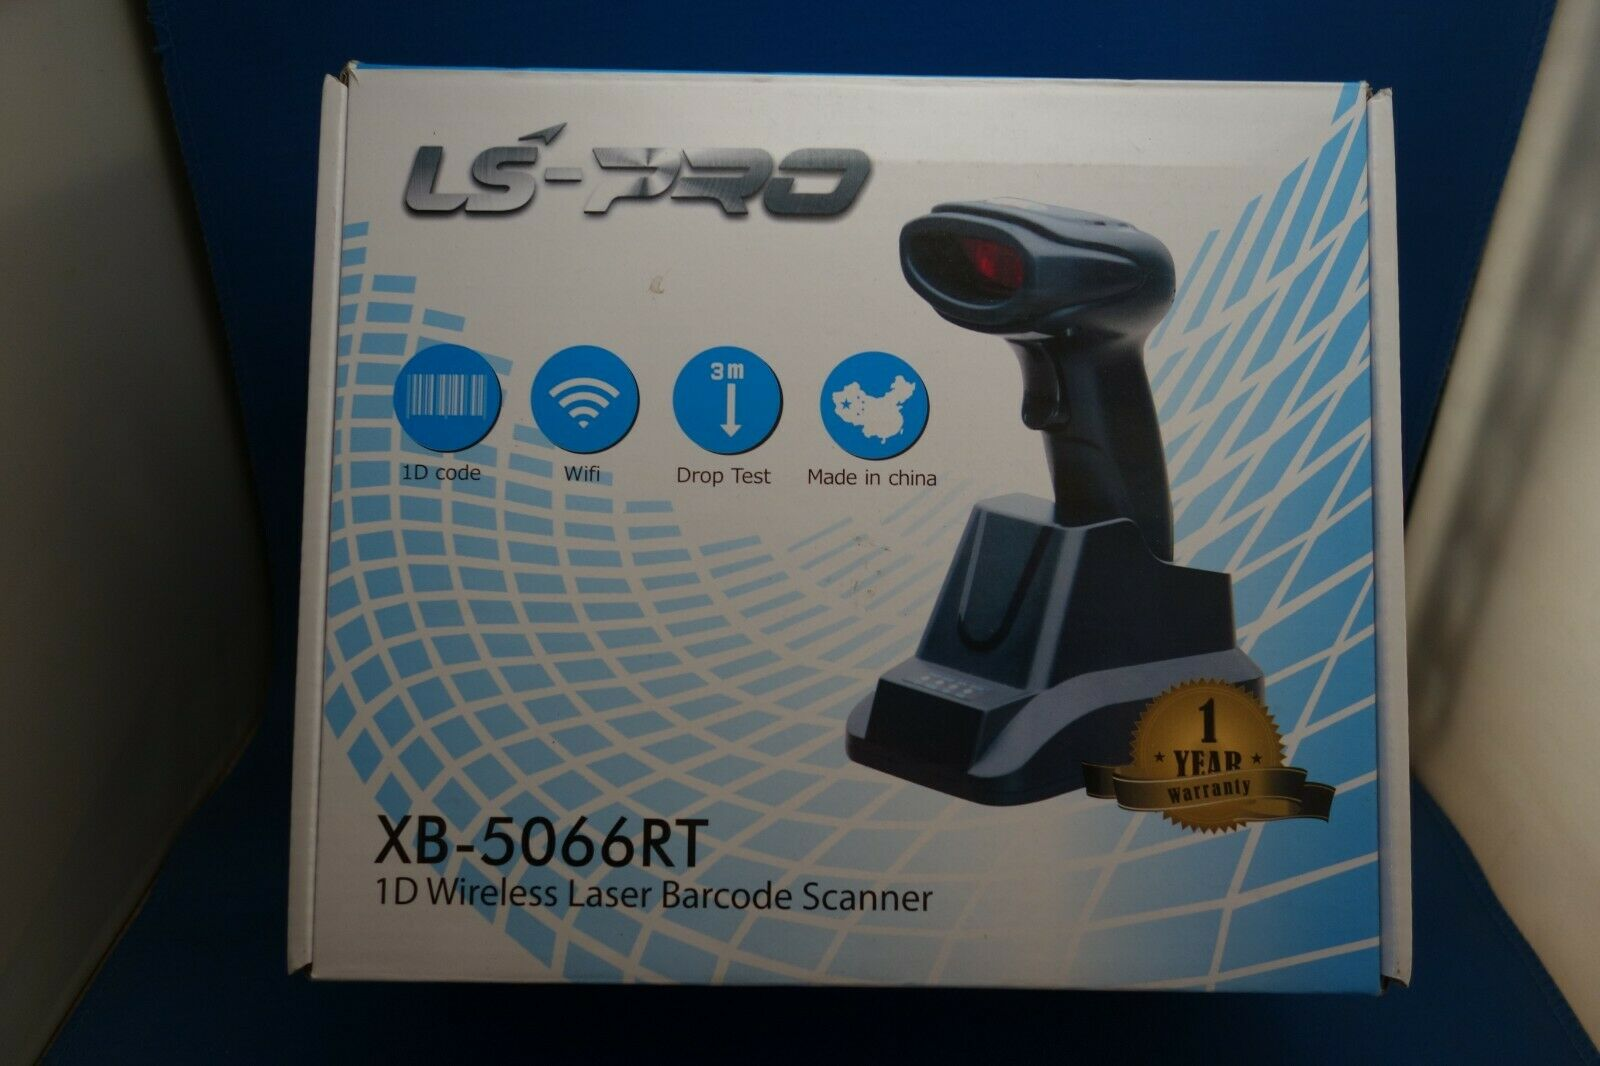 LS-PRO Wireless Barcode Scanner with USB Cradle Receiver Cha